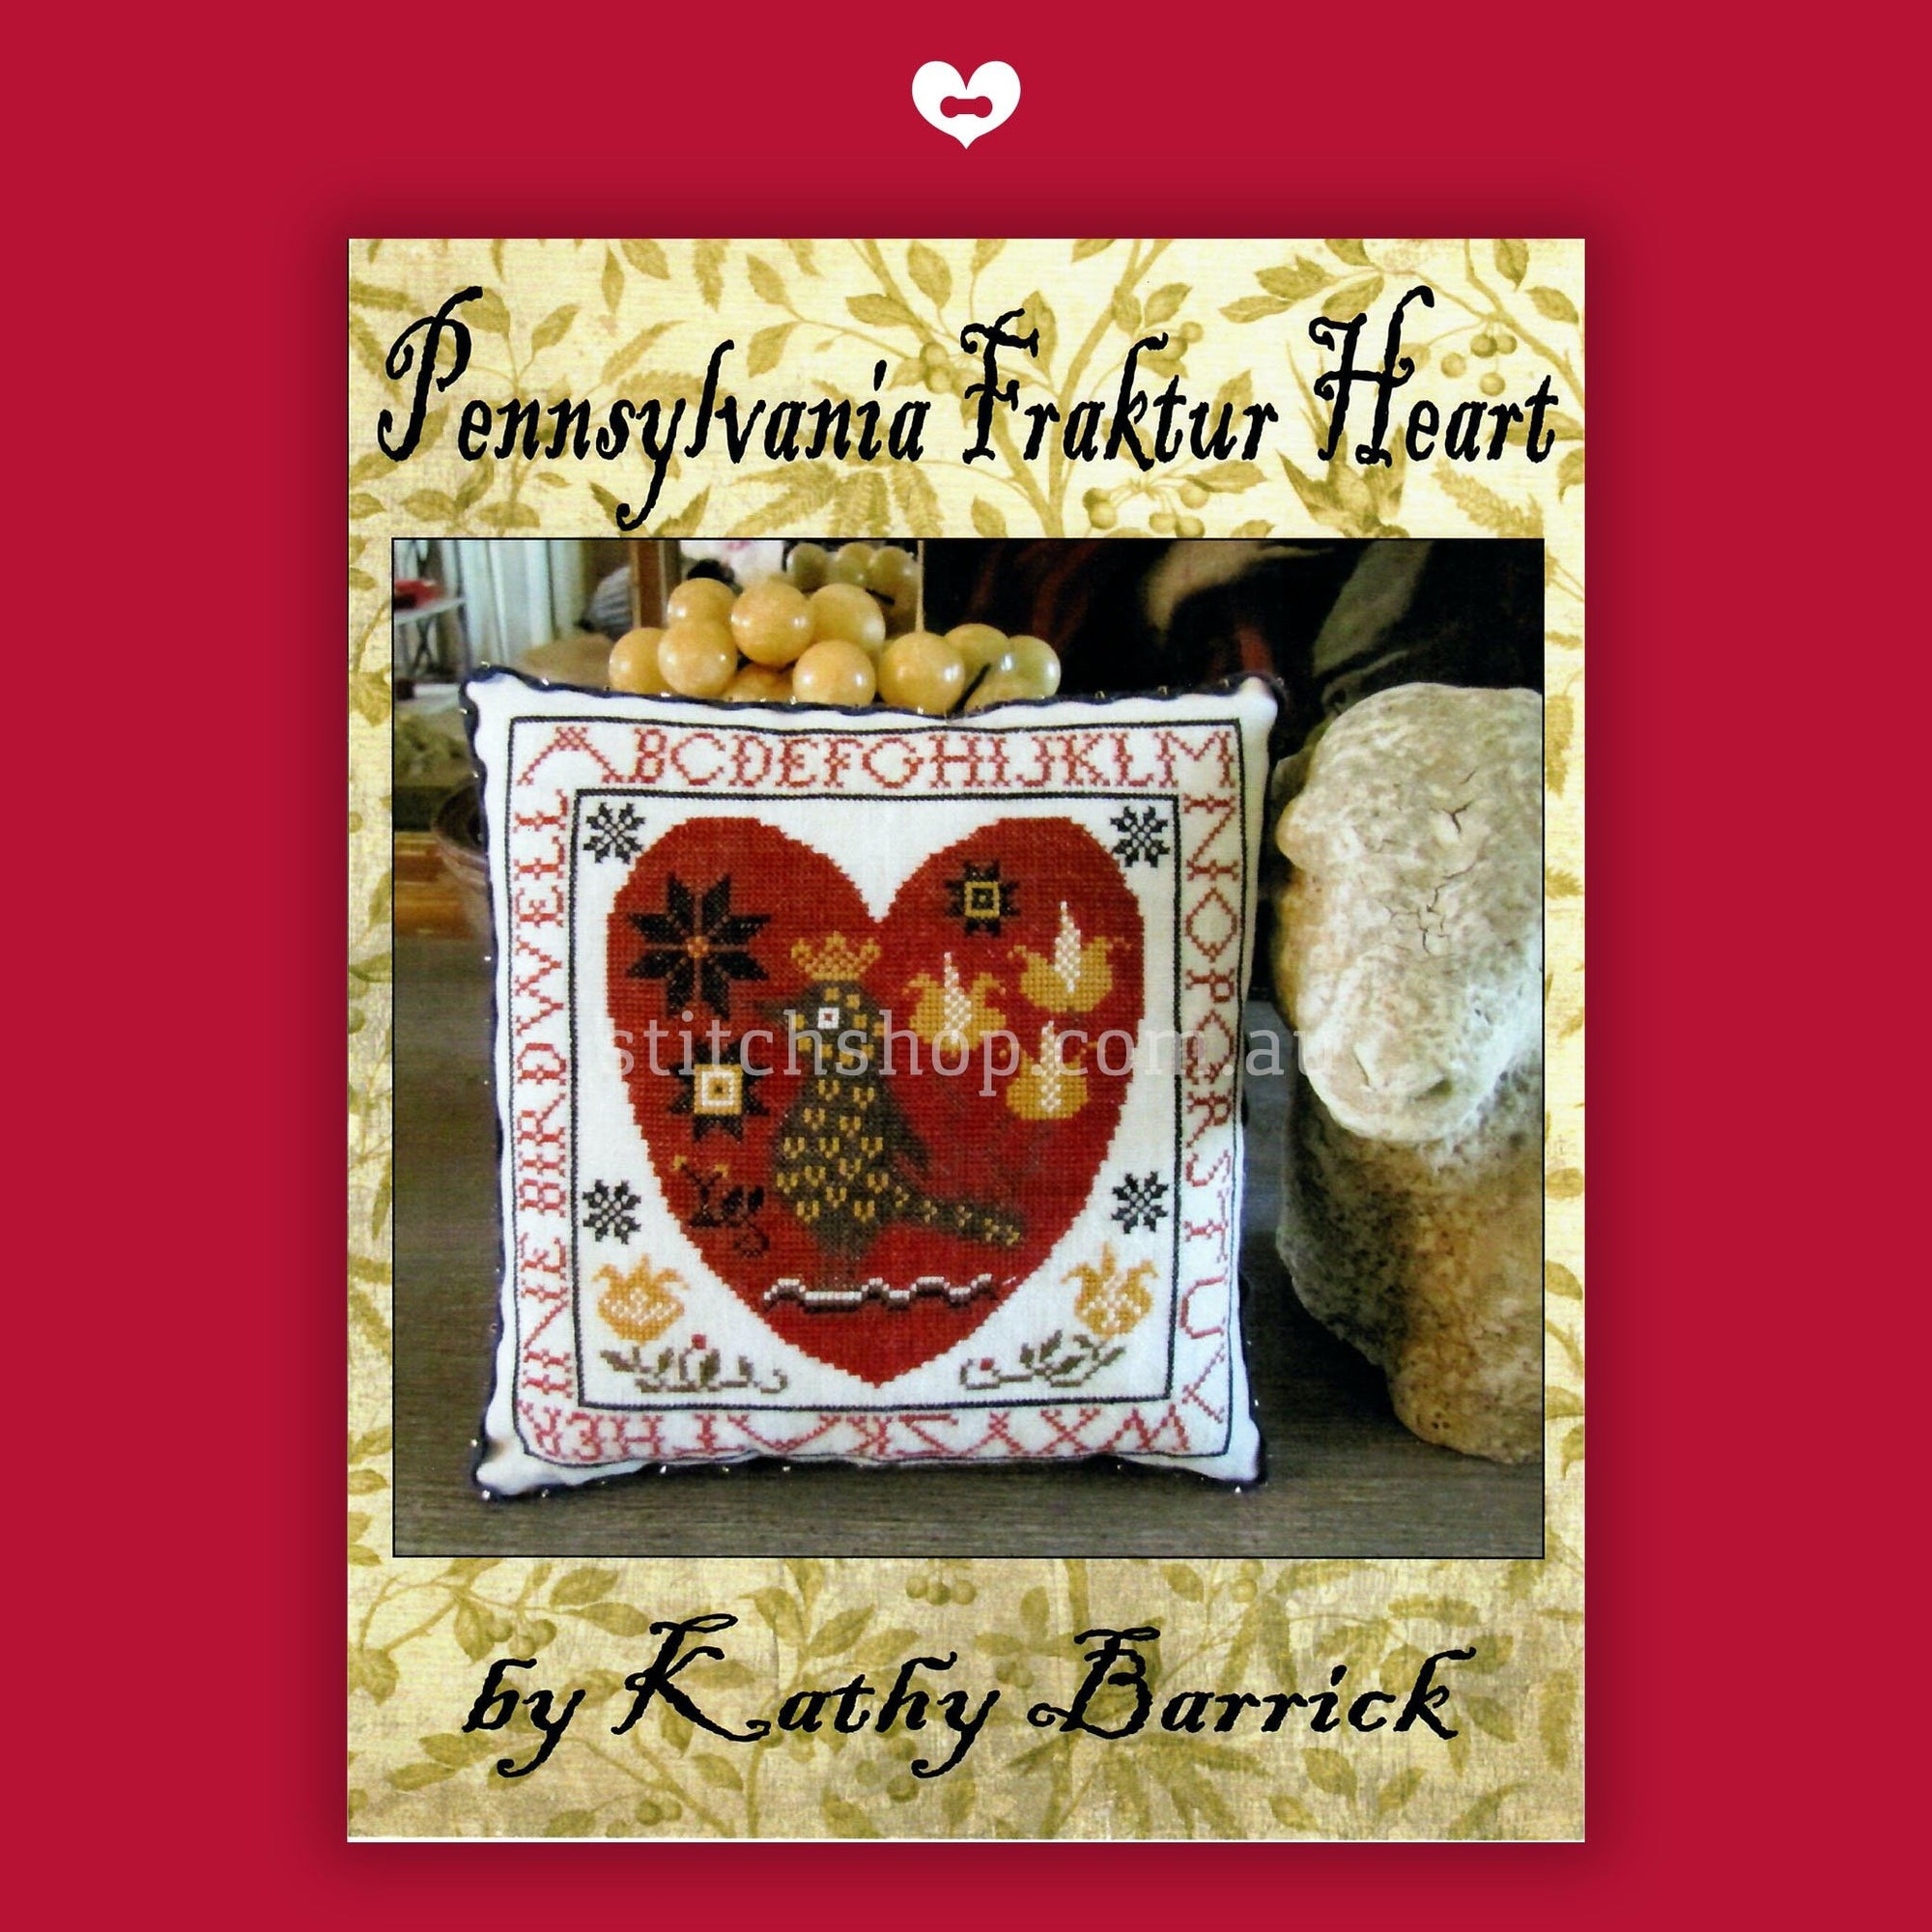 Pennsylvania Fraktur Heart